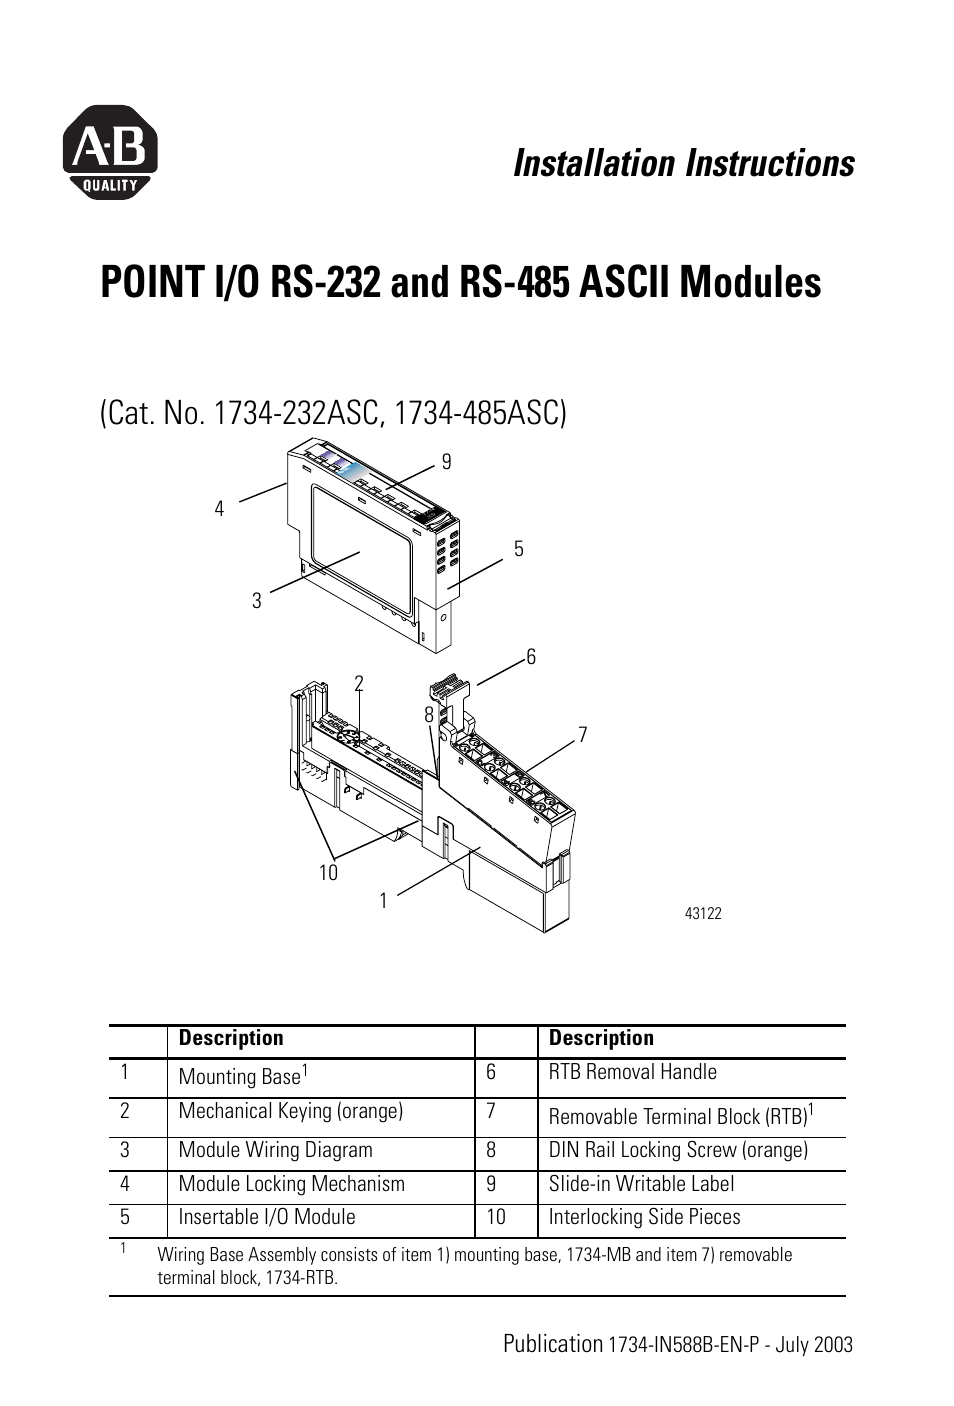 Rockwell Automation 1734 485asc Point I O Rs 232 And 485 Ascii Wiring Diagrams Terminal Blocks Modules Installation Instructions User Manual 24 Pages Also For A232asc